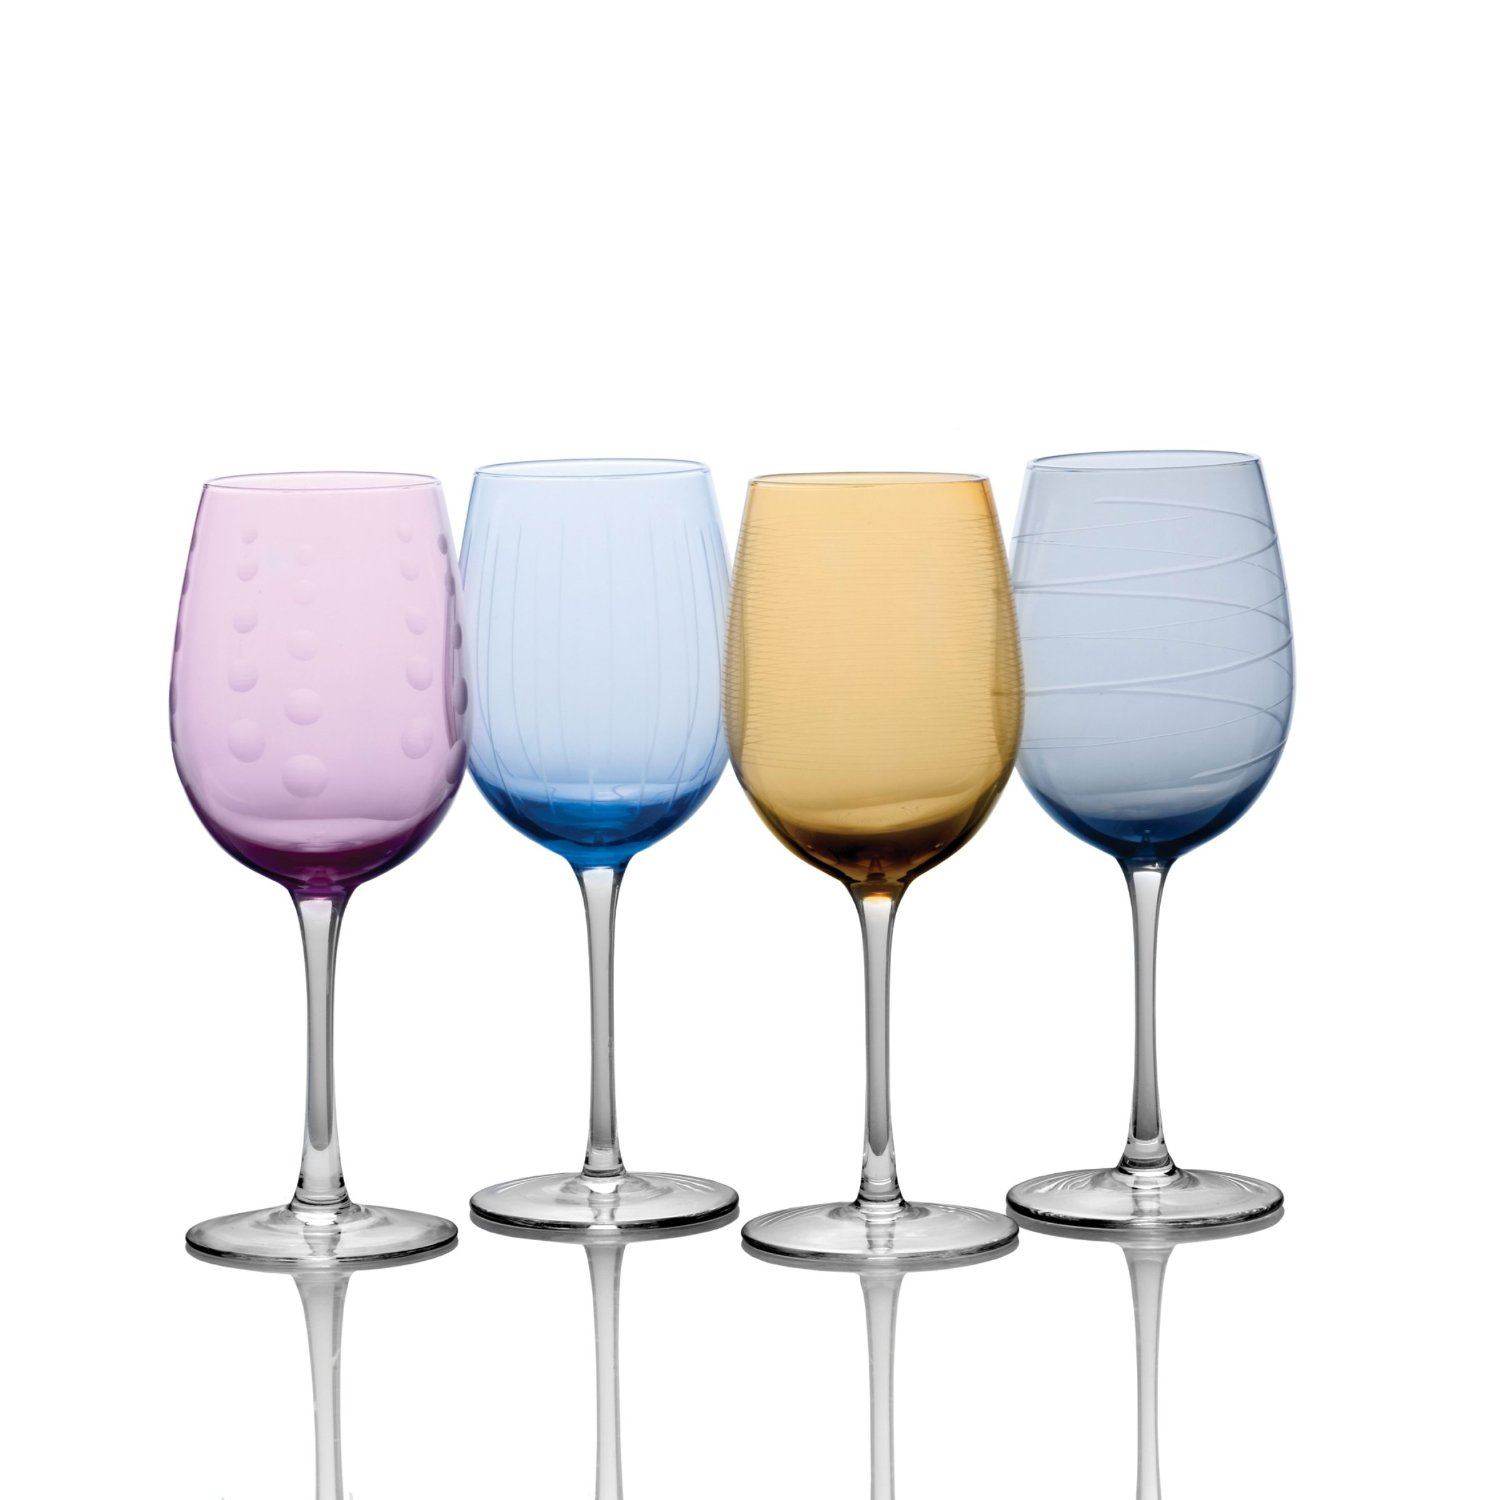 Beautiful Mikasa Wine Glasses for Stemware or Serveware: Assorted Color Glass Mikasa Wine Glasses